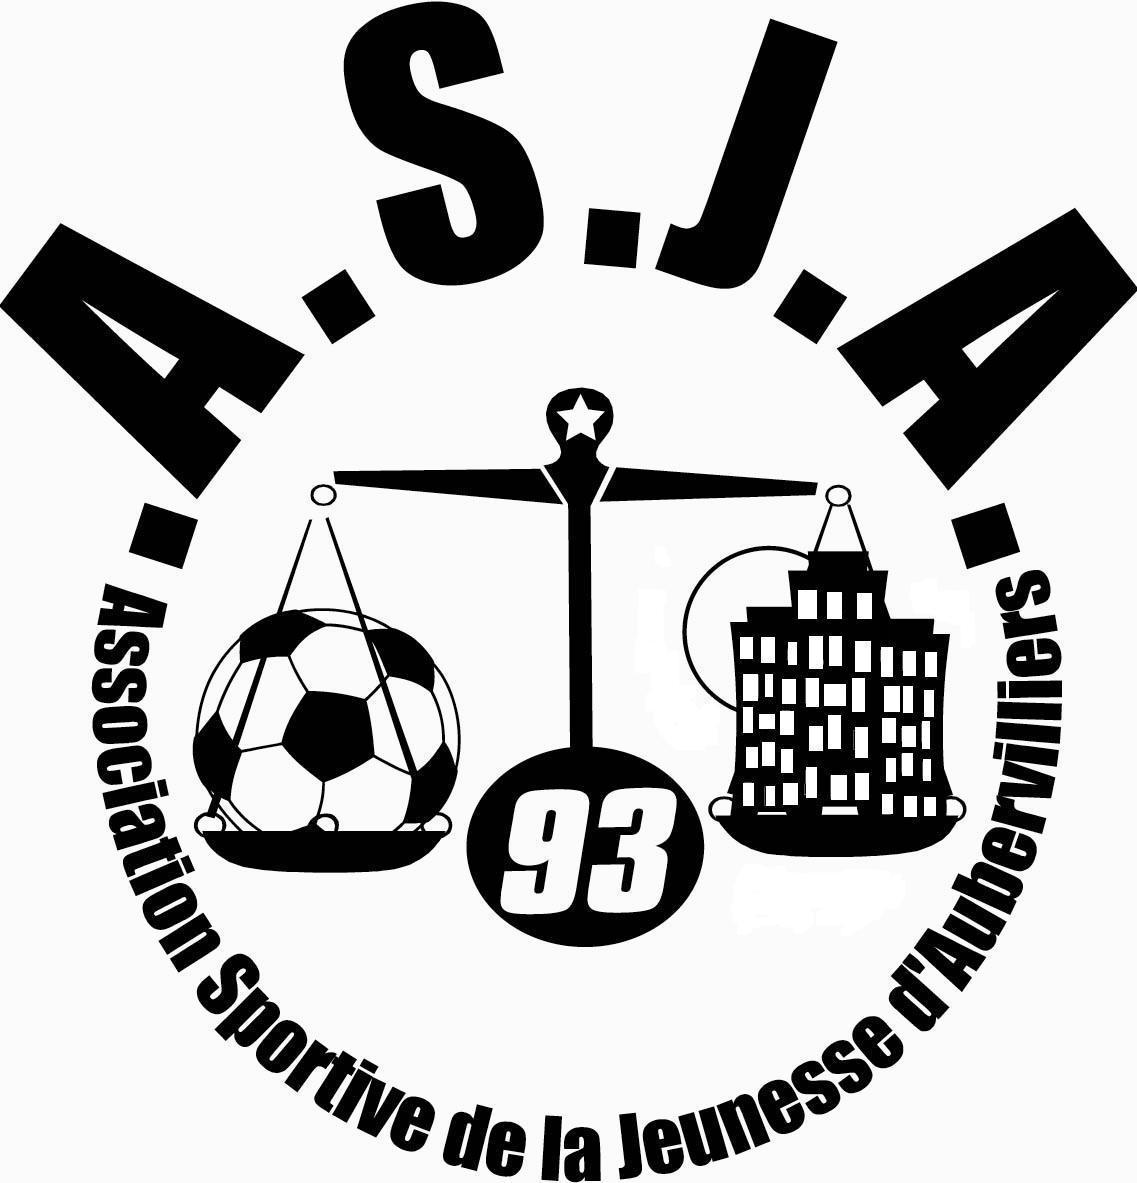 http://old.staff.footeo.com/uploads/as-jeunesseaubervilliers/Medias/Logo_FOOTBALL_pour_le_Papier_a_entete.JPG